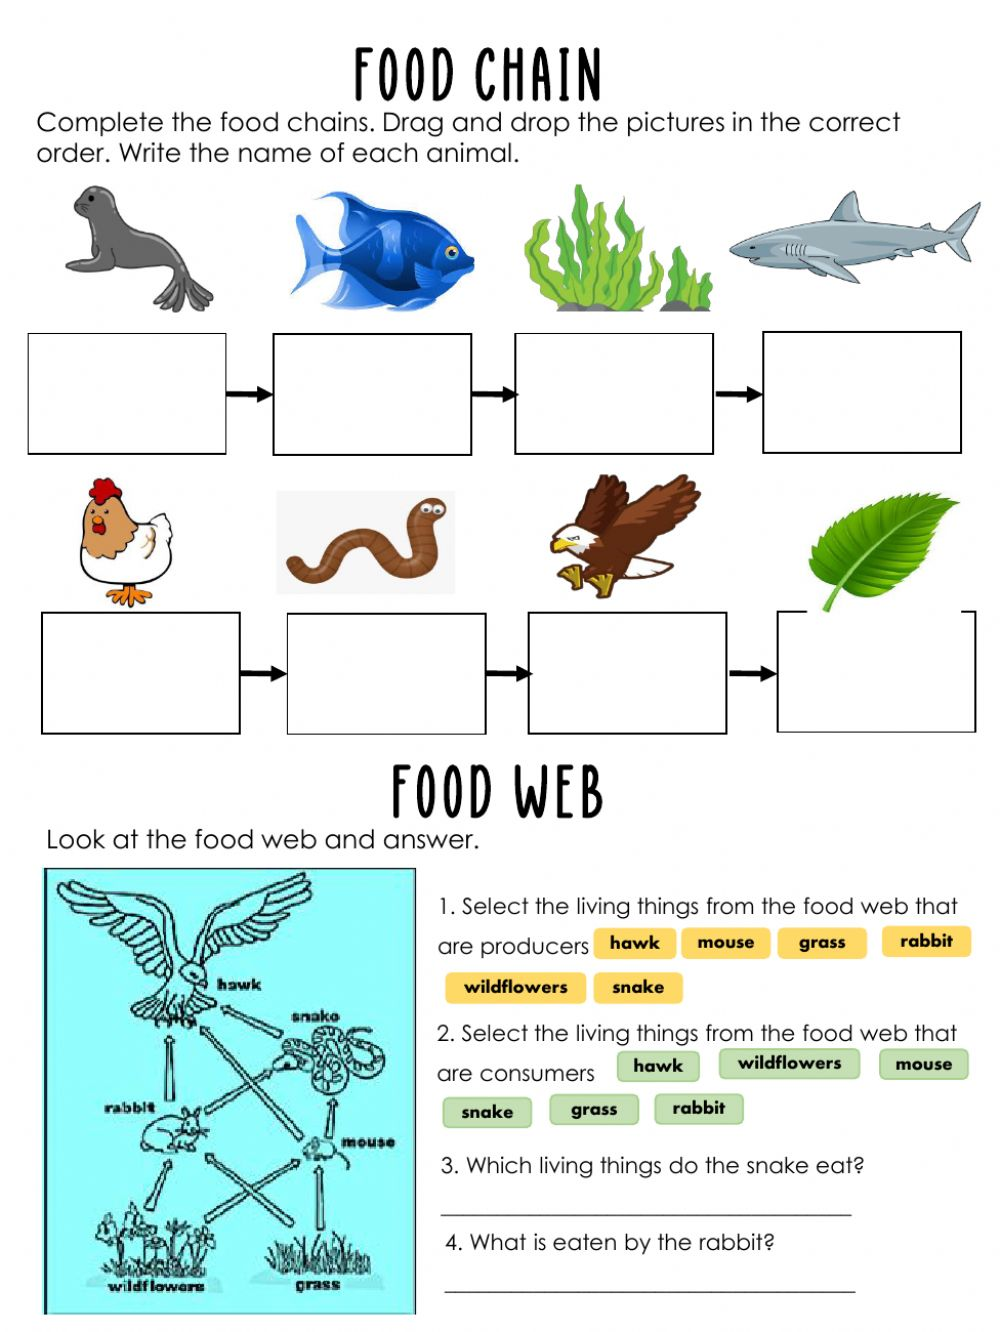 Food chain interactive exercise